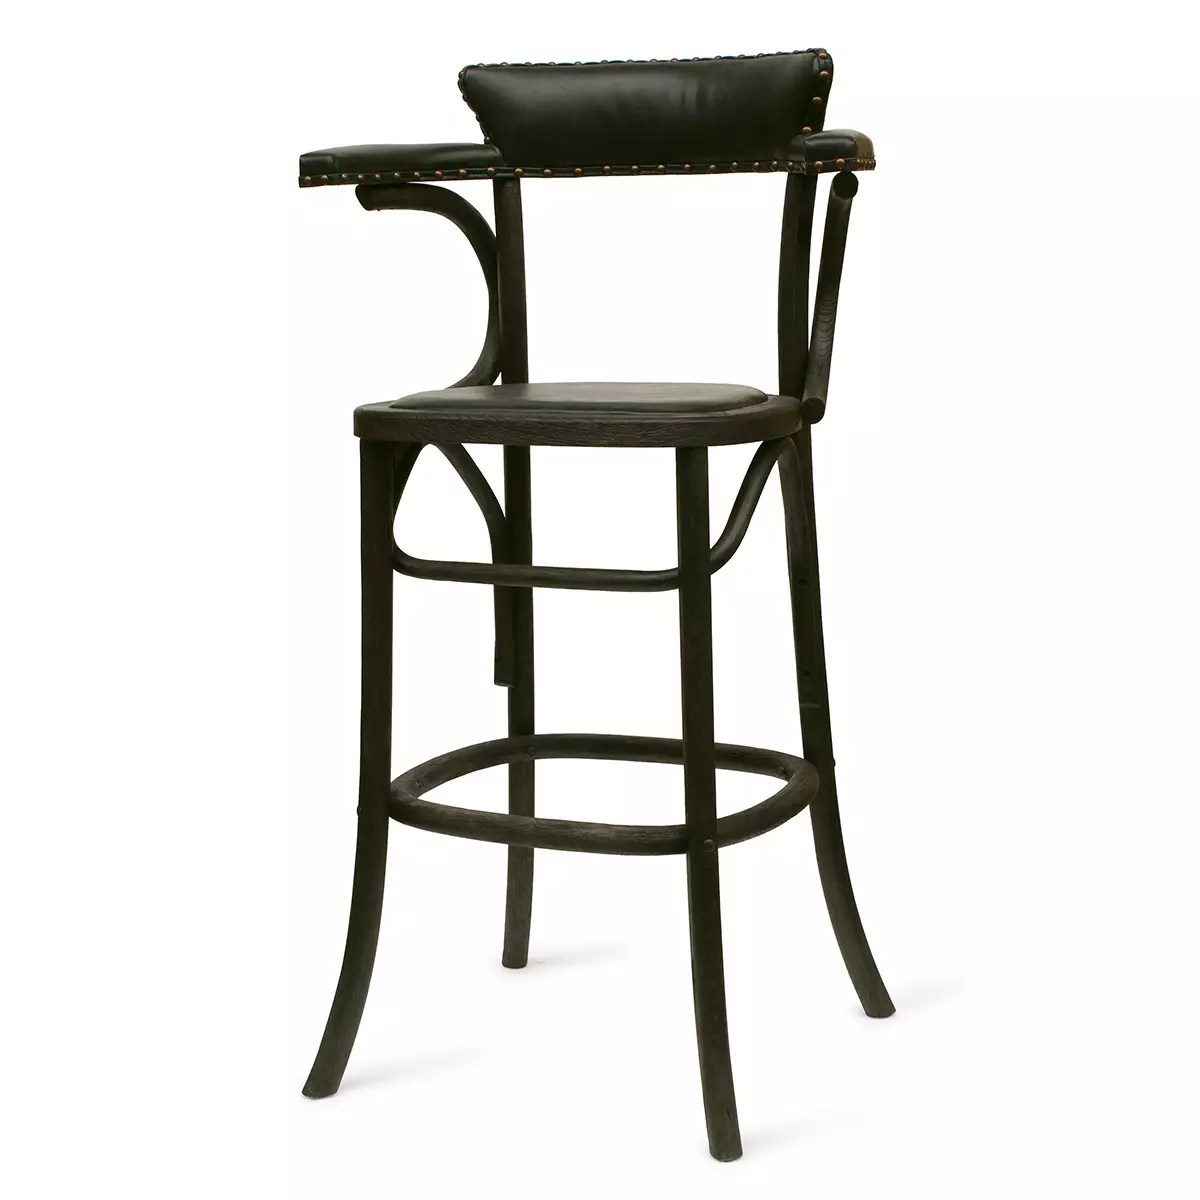 tabouret haut mod william concu par